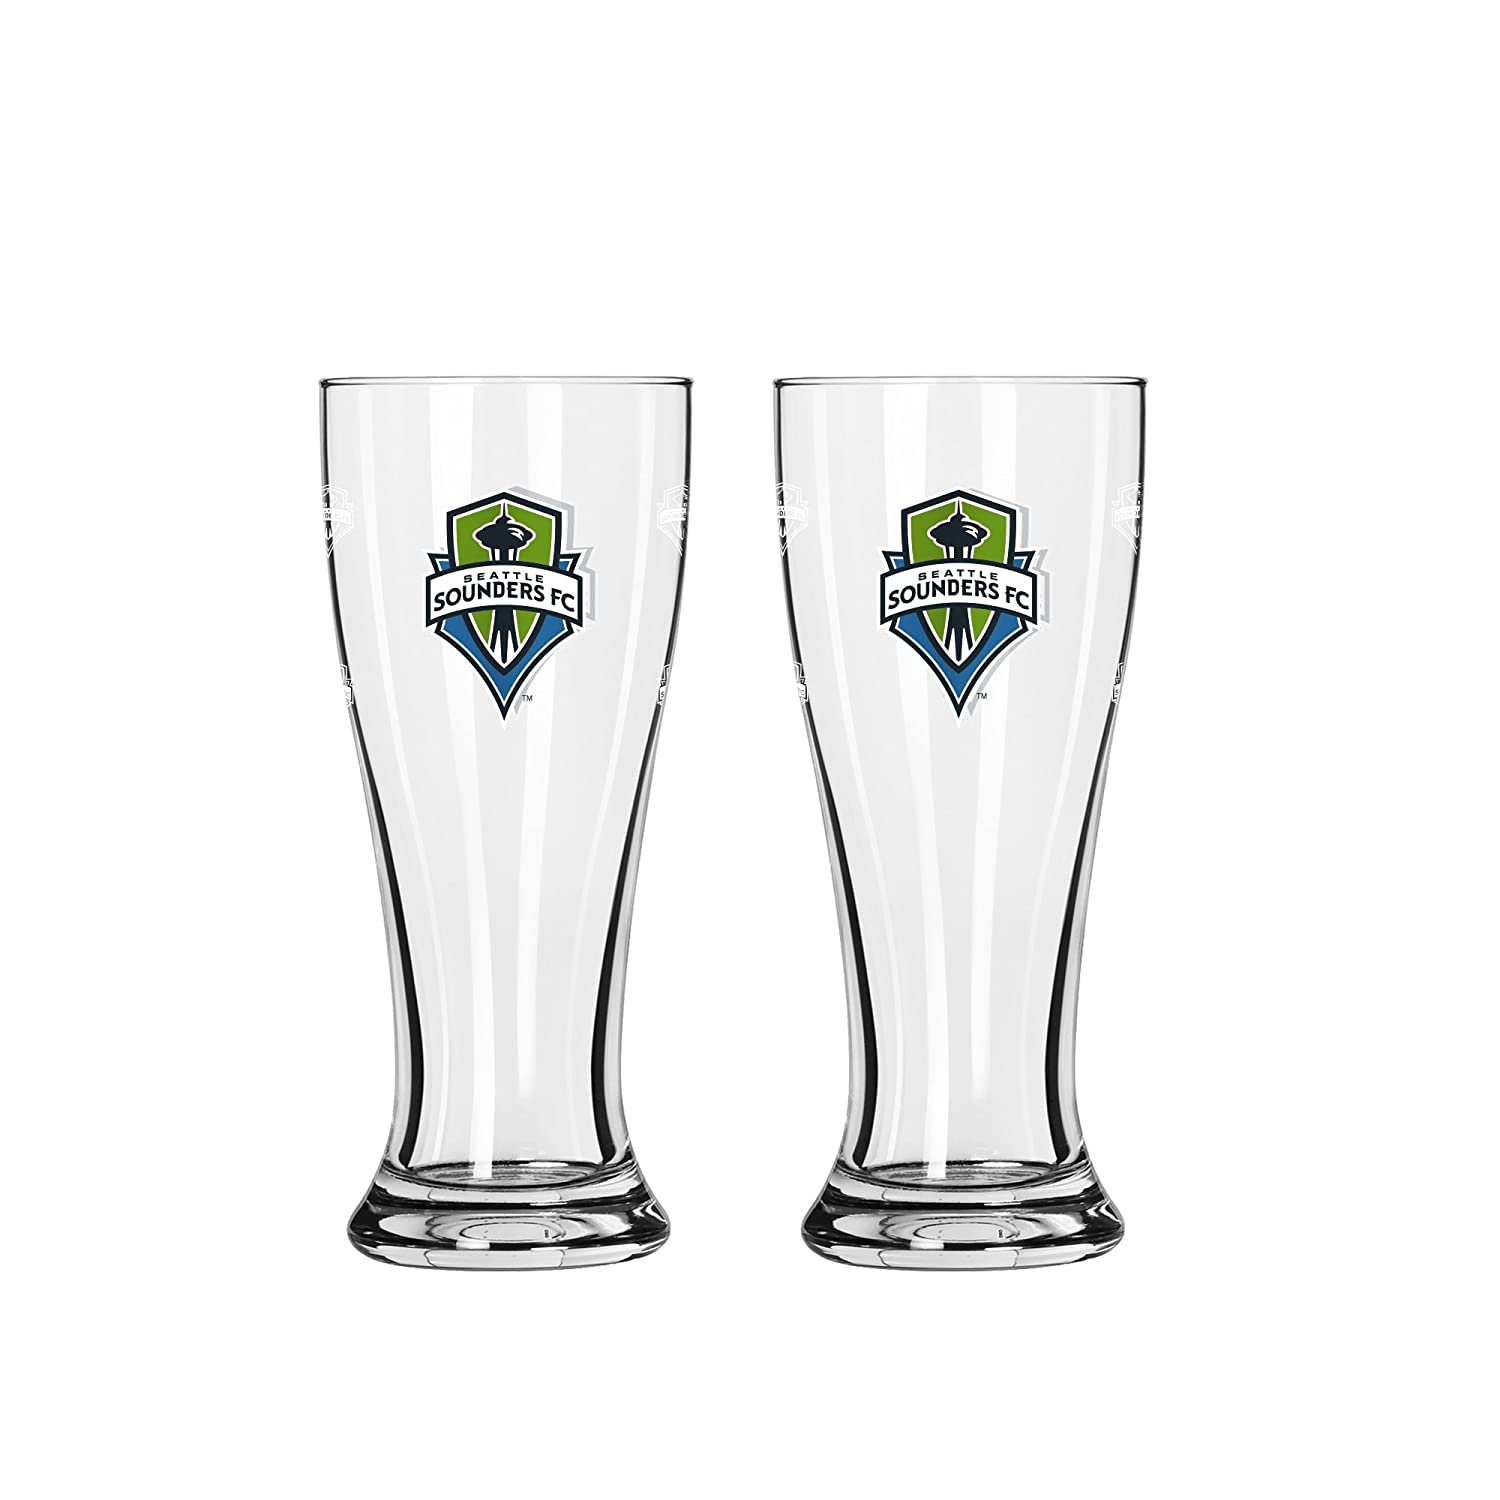 MLS Seattle Sounders FC Mini Pilsner, 2.5-ounce, 2-Pack